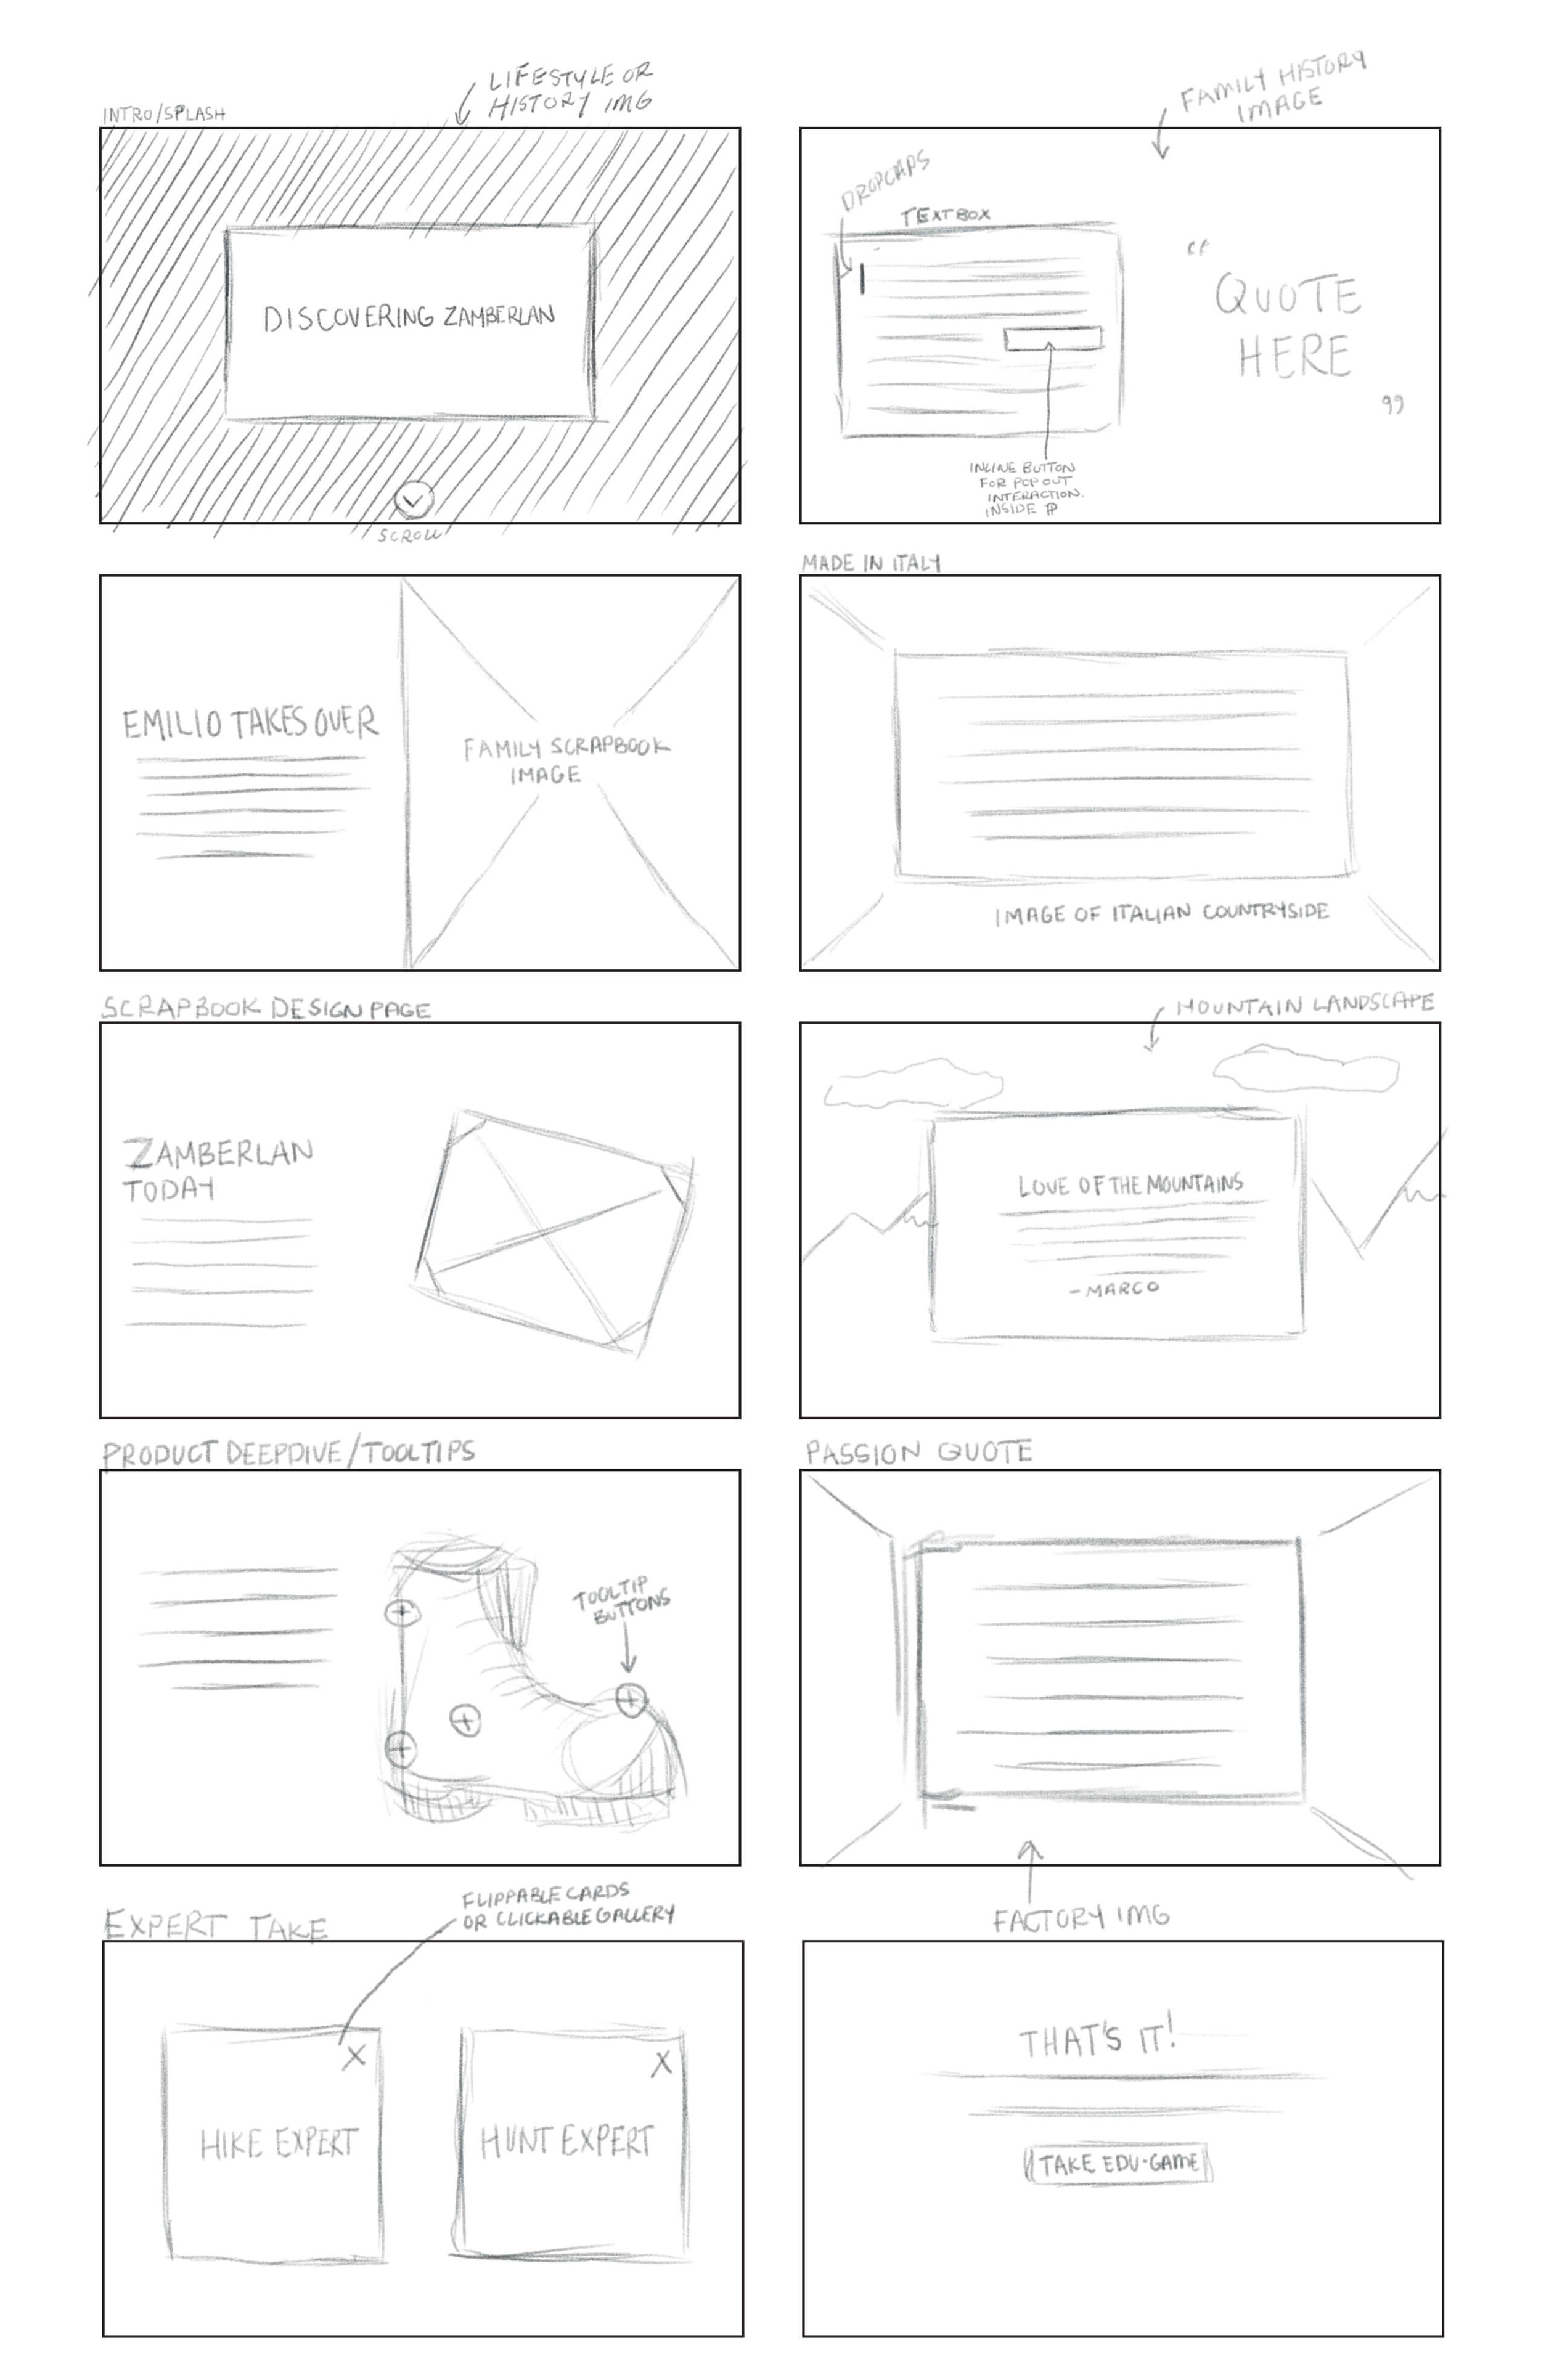 Sketches for Zamberlan eLearning campaign design and content layout